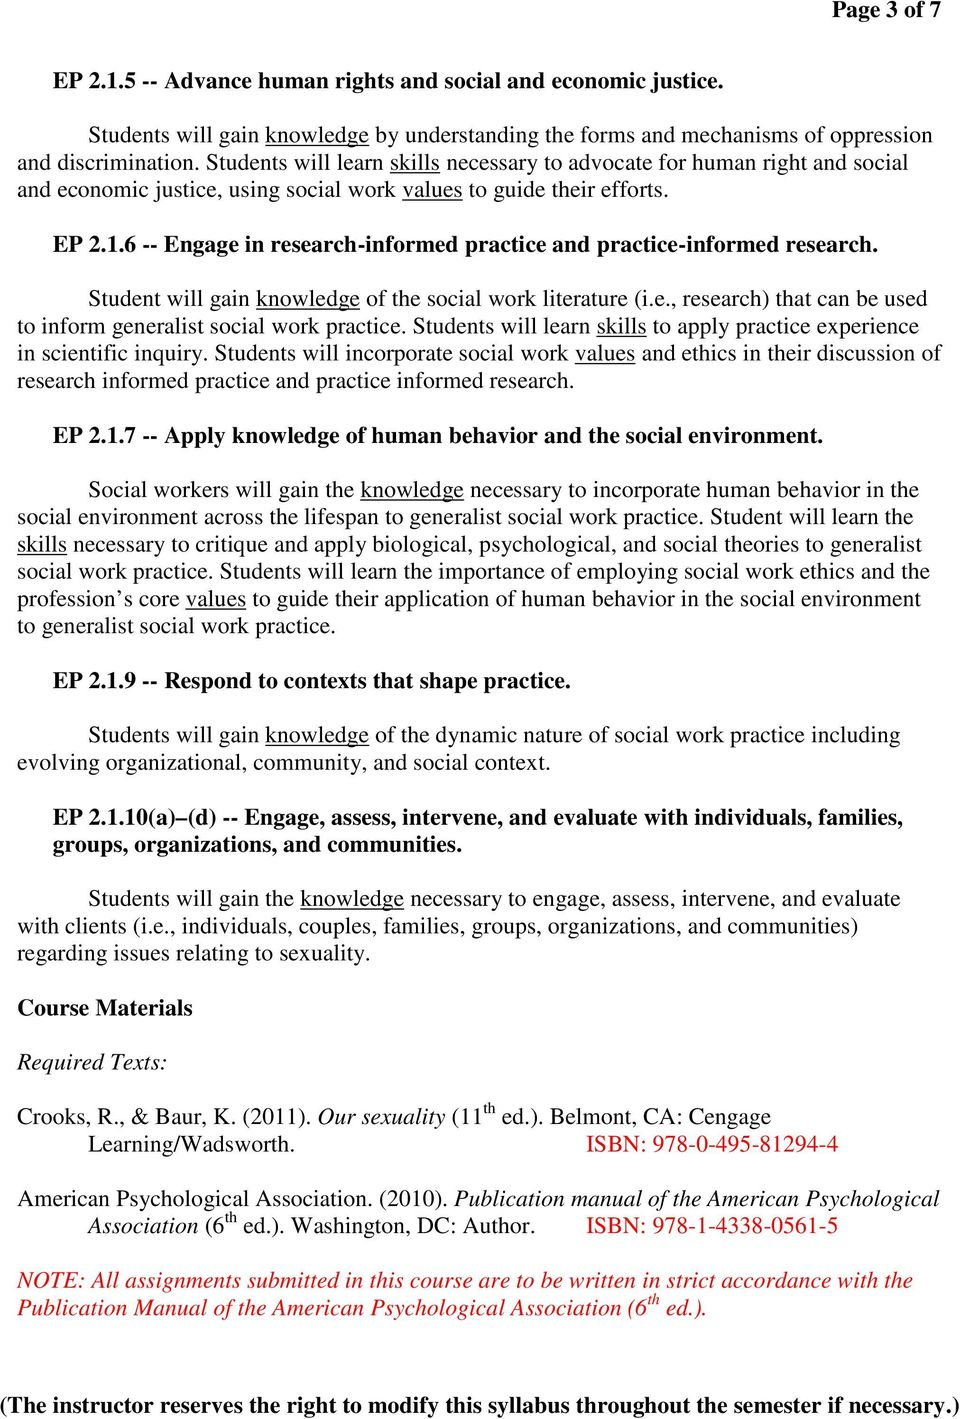 6 -- Engage in research-informed practice and practice-informed research. Student will gain knowledge of the social work literature (i.e., research) that can be used to inform generalist social work practice.